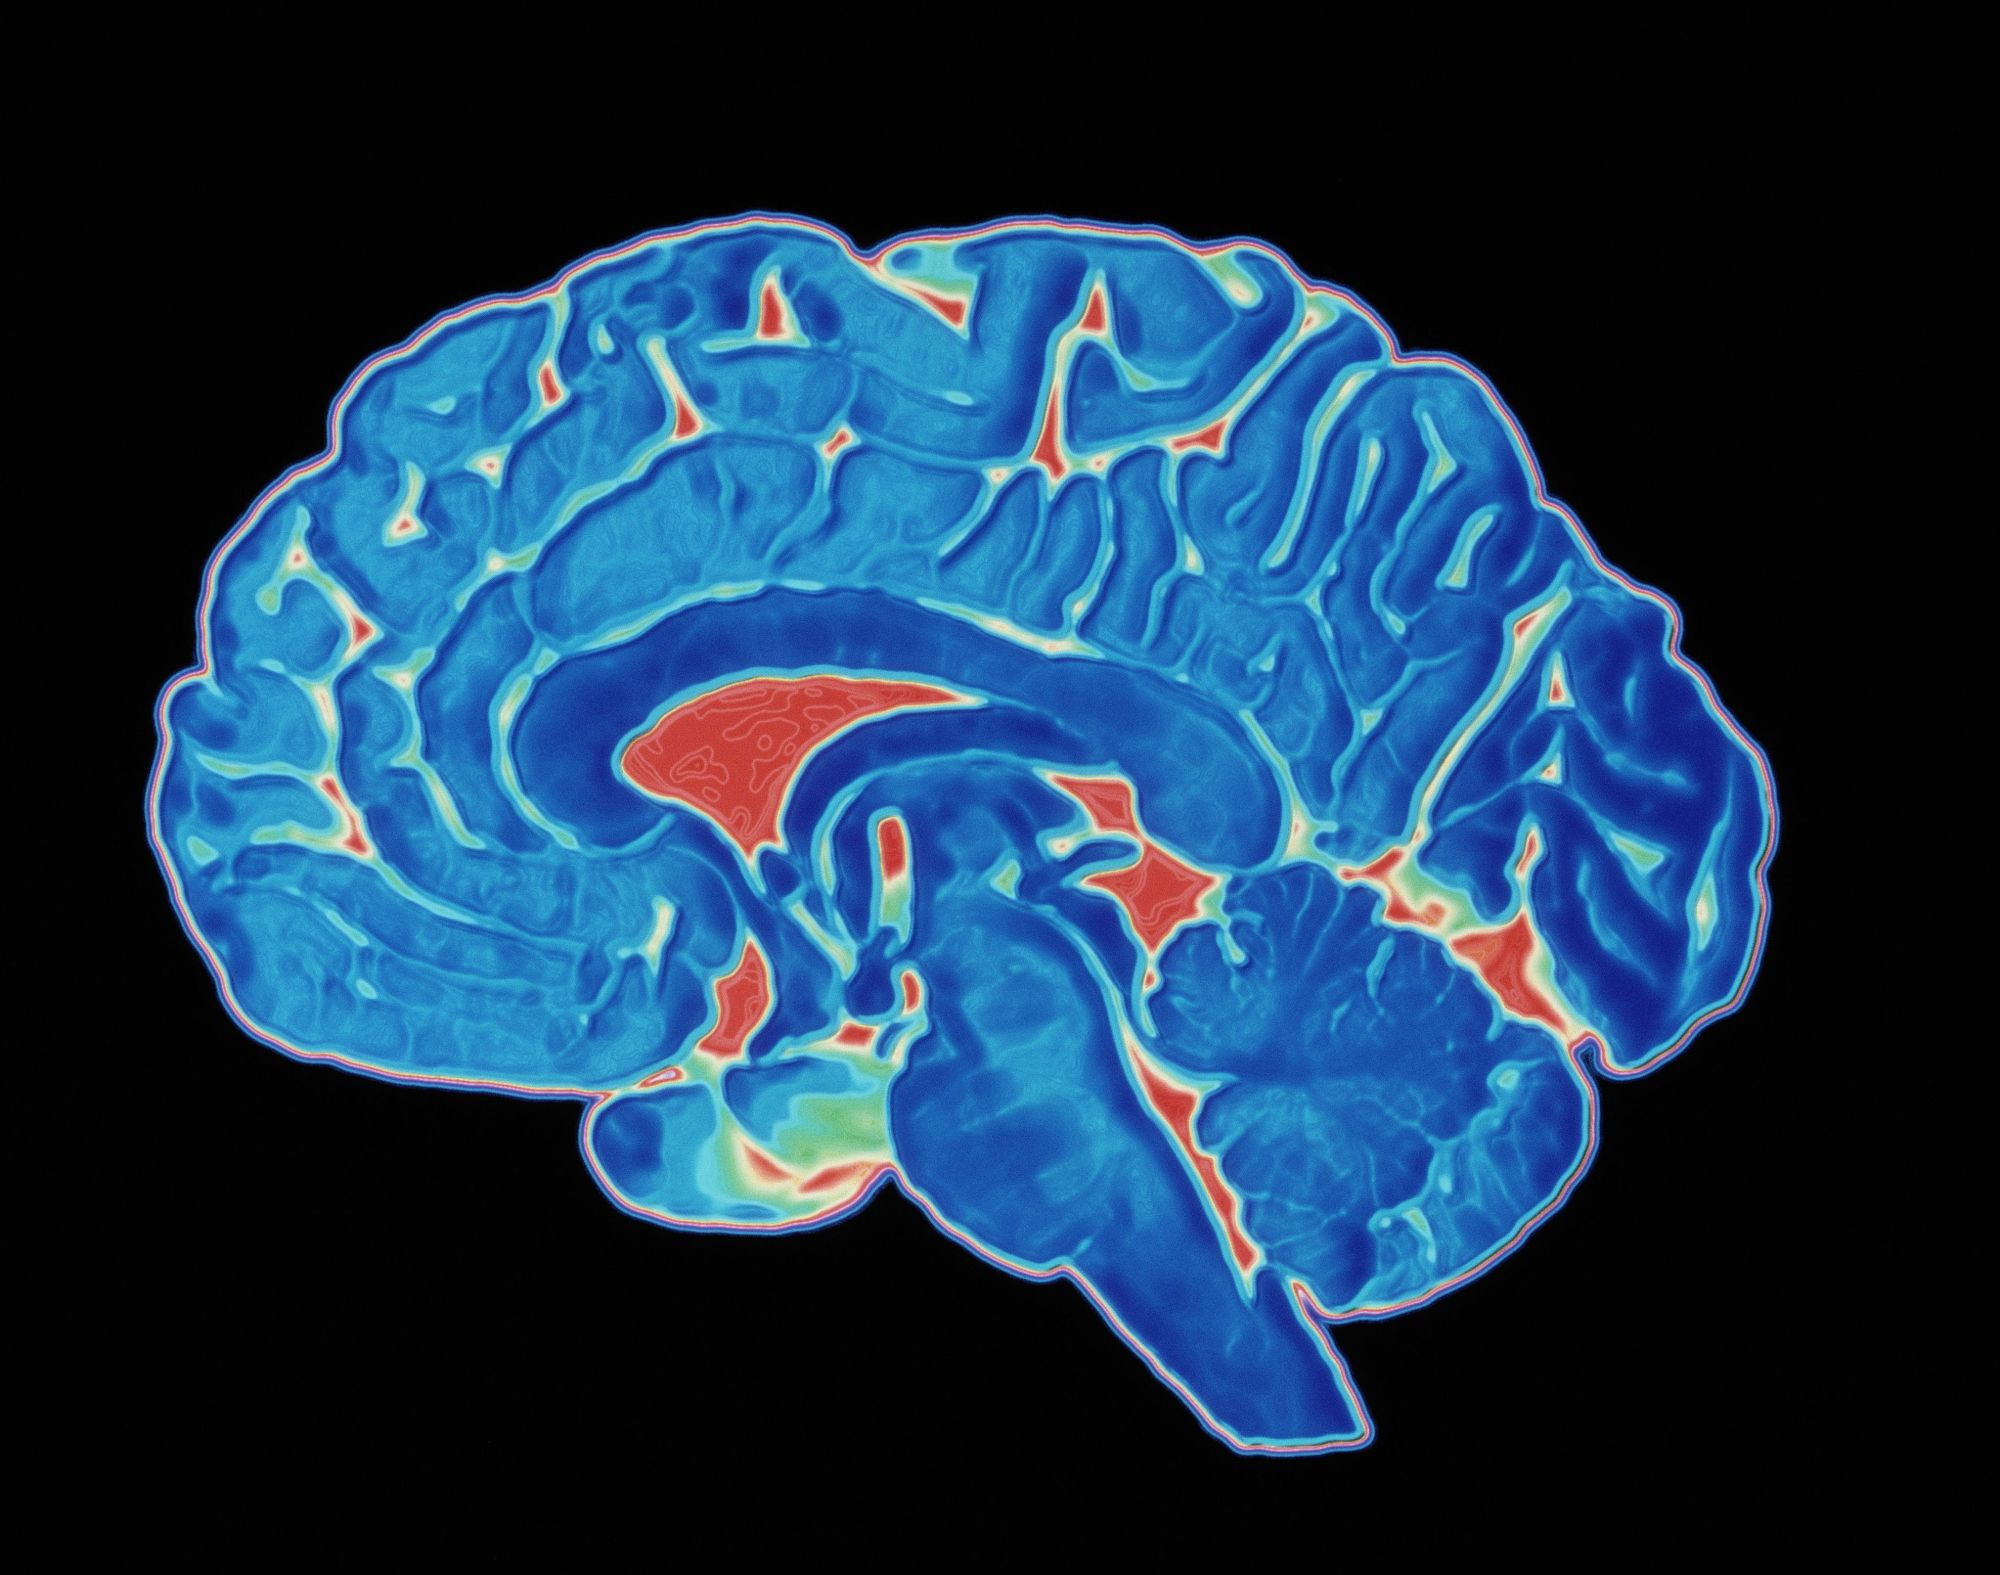 hight resolution of coloured ct scan of a healthy brain side view